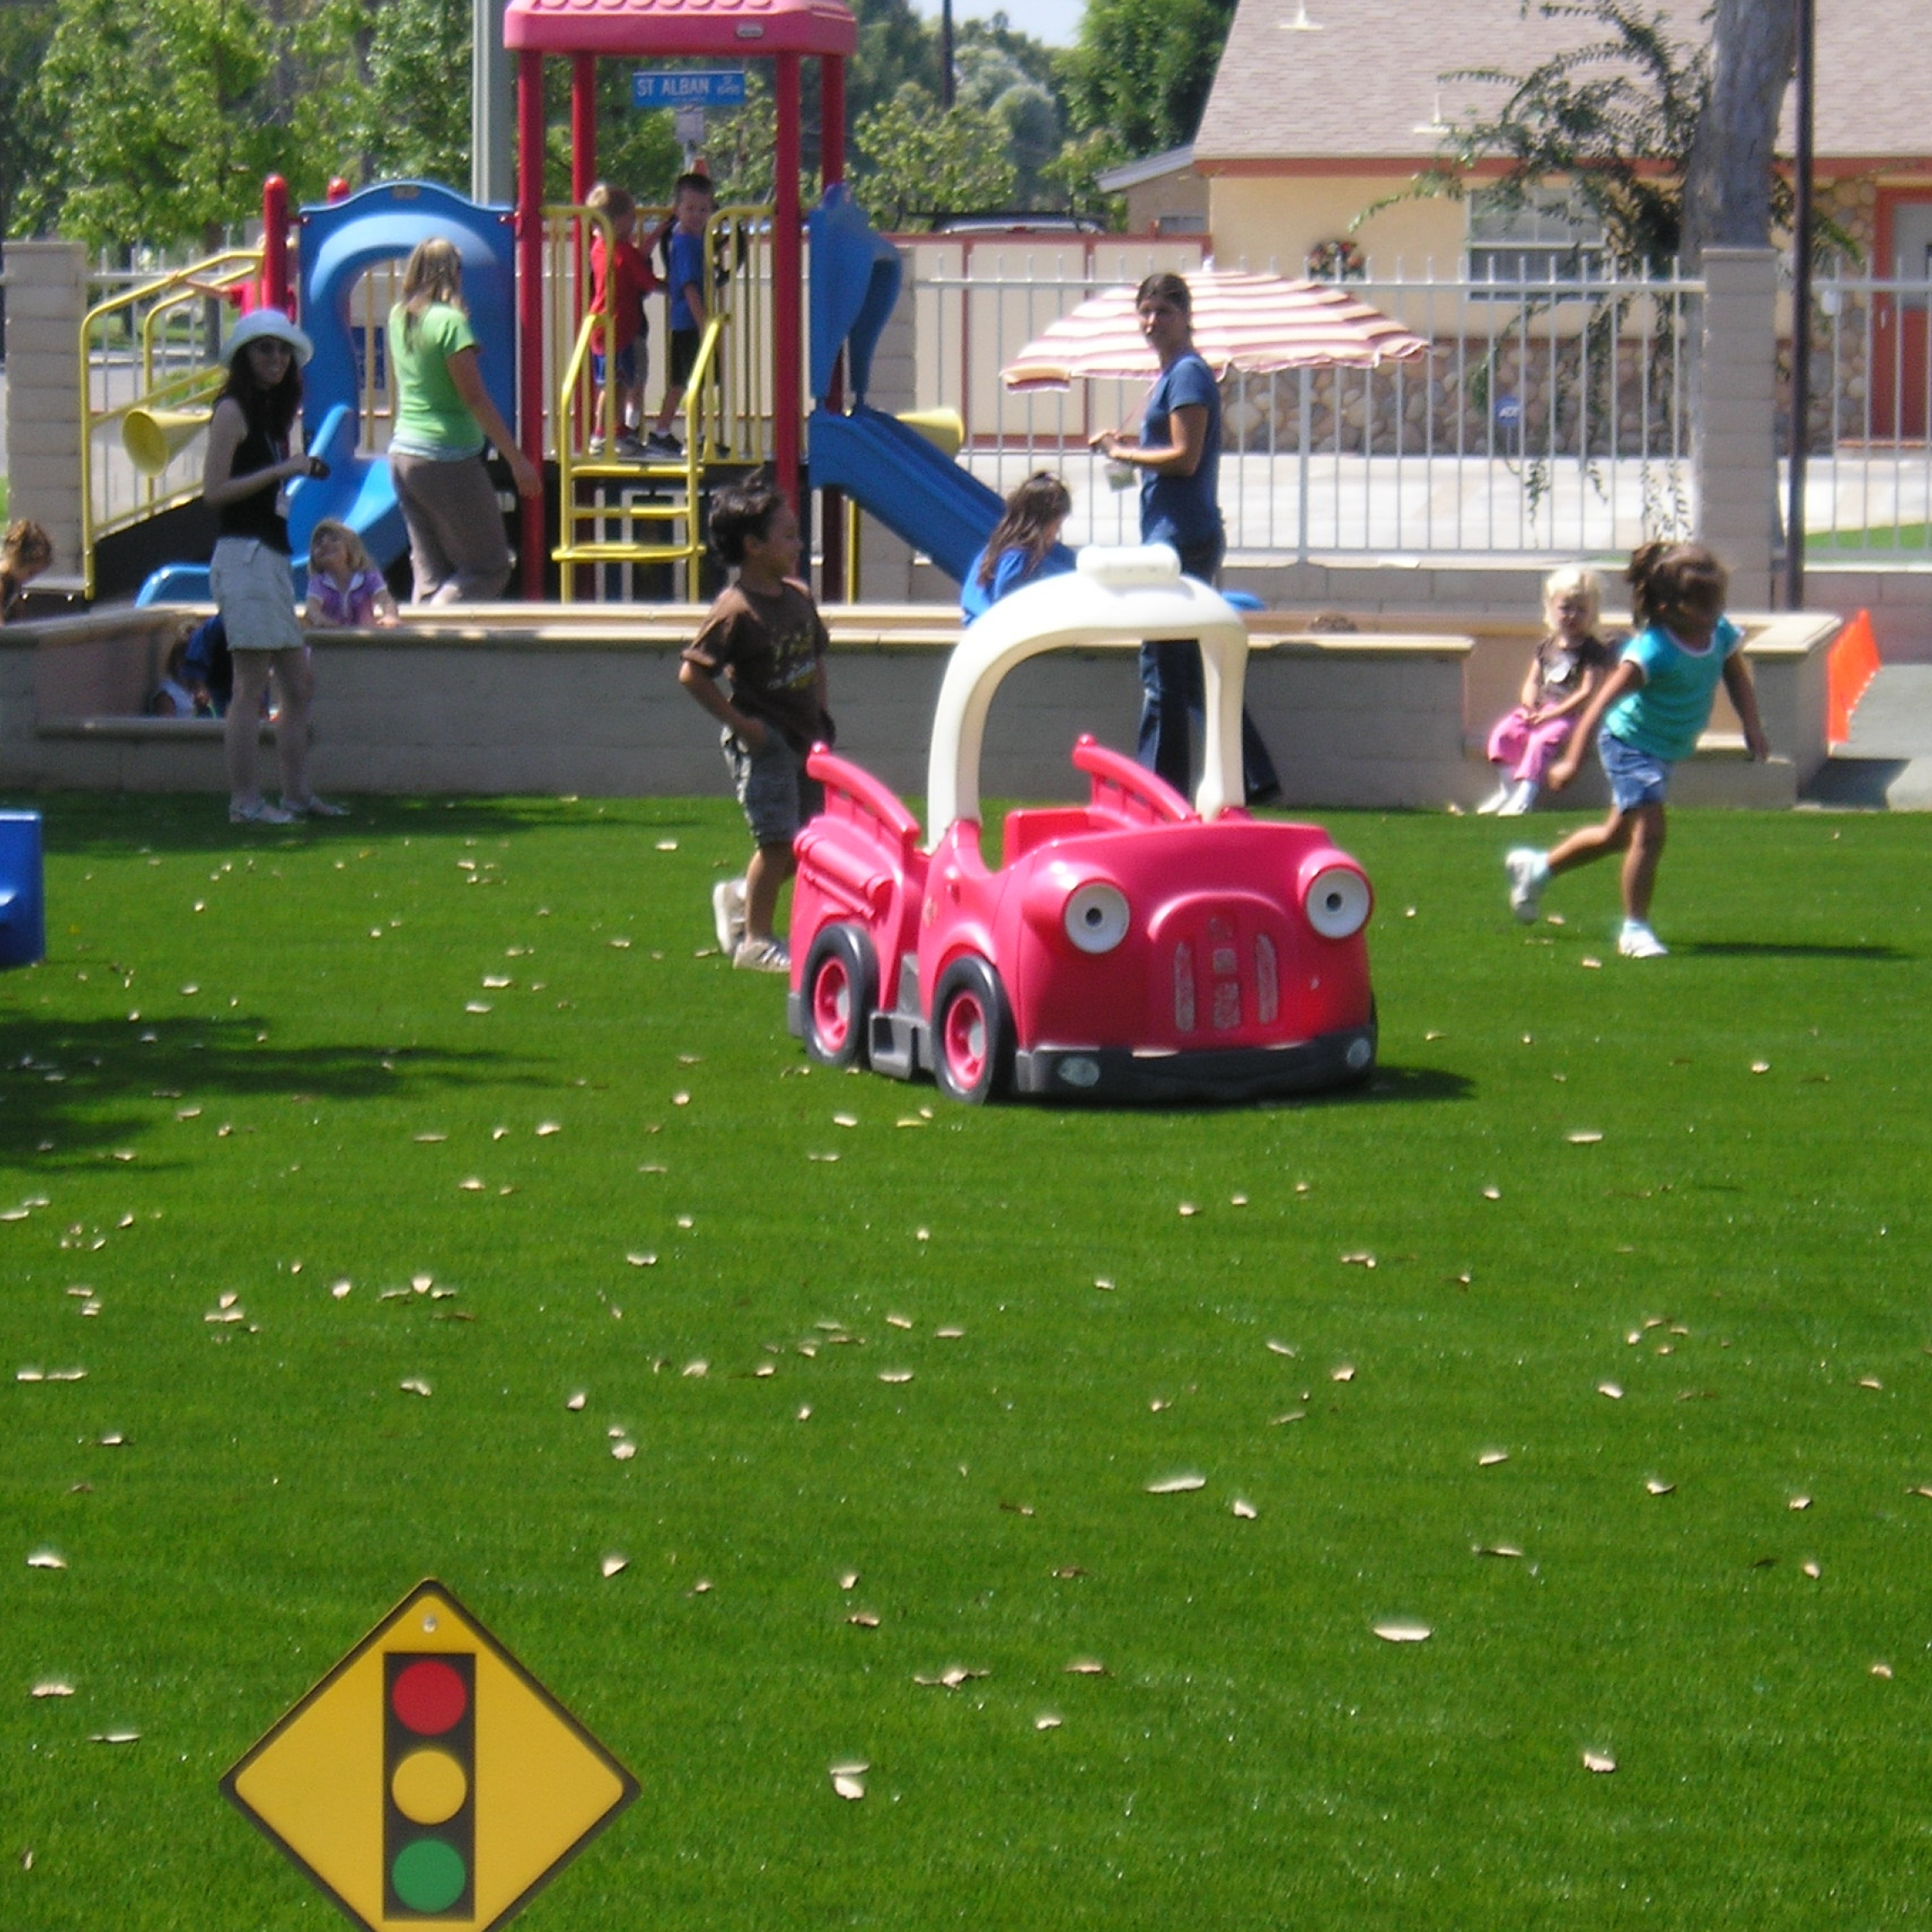 S Blade-66 playground turf,outdoor turf,outdoor artificial turf,indoor outdoor turf,artificial turf for playgrounds,playground turf,playground grass,playground foam padding,artificial turf for playgrounds,playground artificial turf